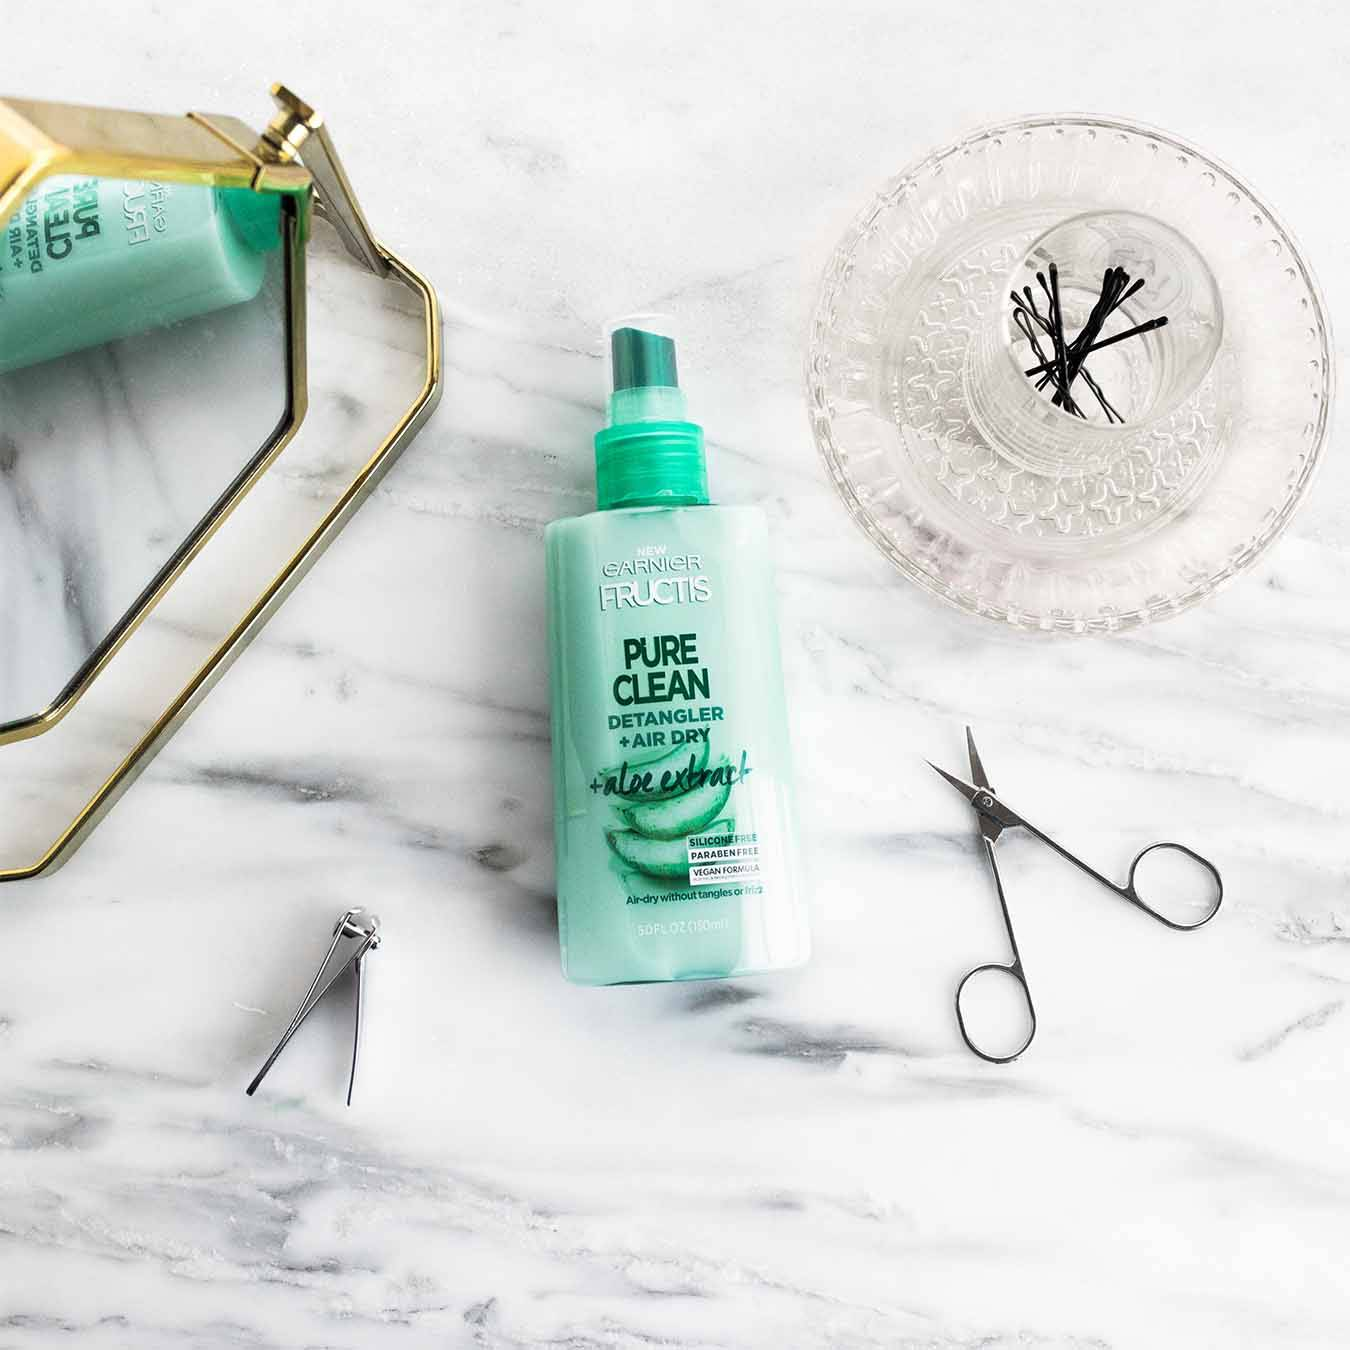 Garnier Fructis Pure Clean Detangler with Aloe Extract reflected in a gold mirror on white marble next to facial hair scissors, fingernail clippers, and a glass cup filled with bobby pins sitting on a glass plate.